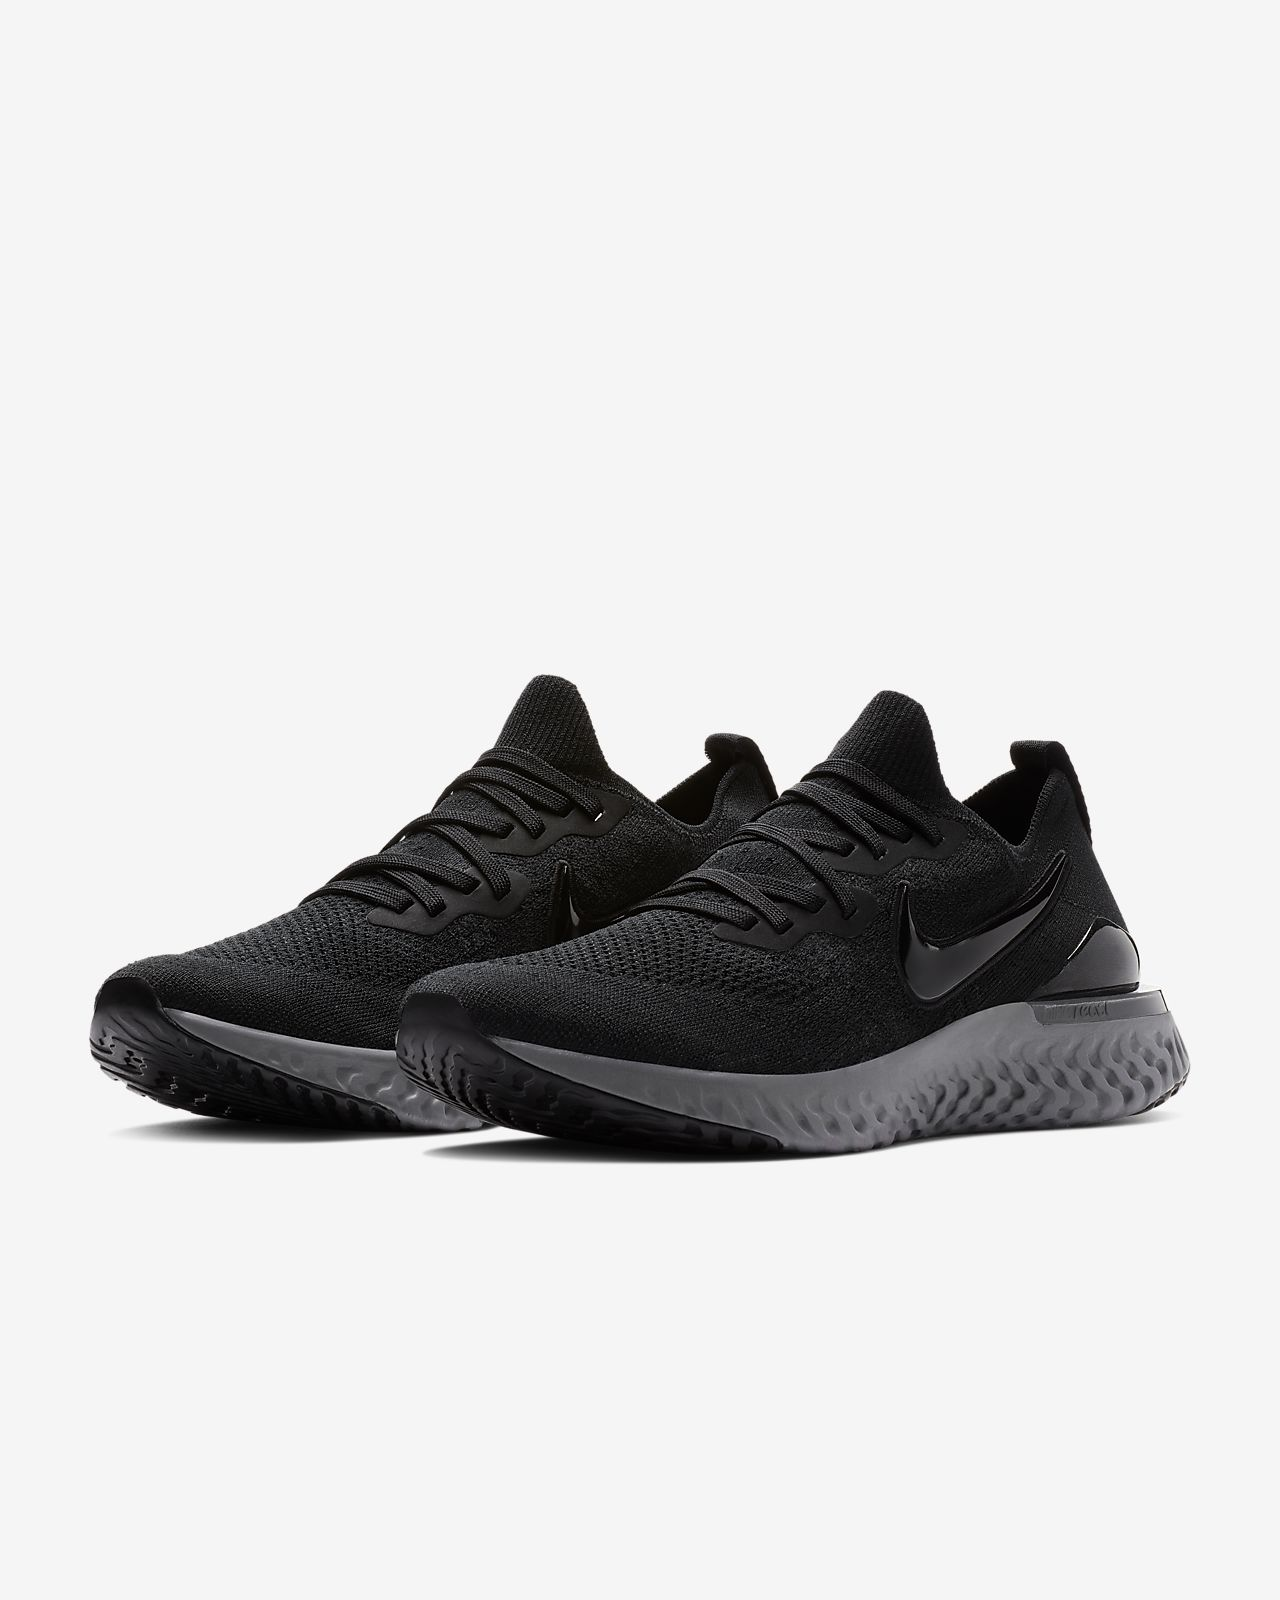 best loved 33480 c7f57 Low Resolution Nike Epic React Flyknit 2 Men s Running Shoe Nike Epic React Flyknit  2 Men s Running Shoe